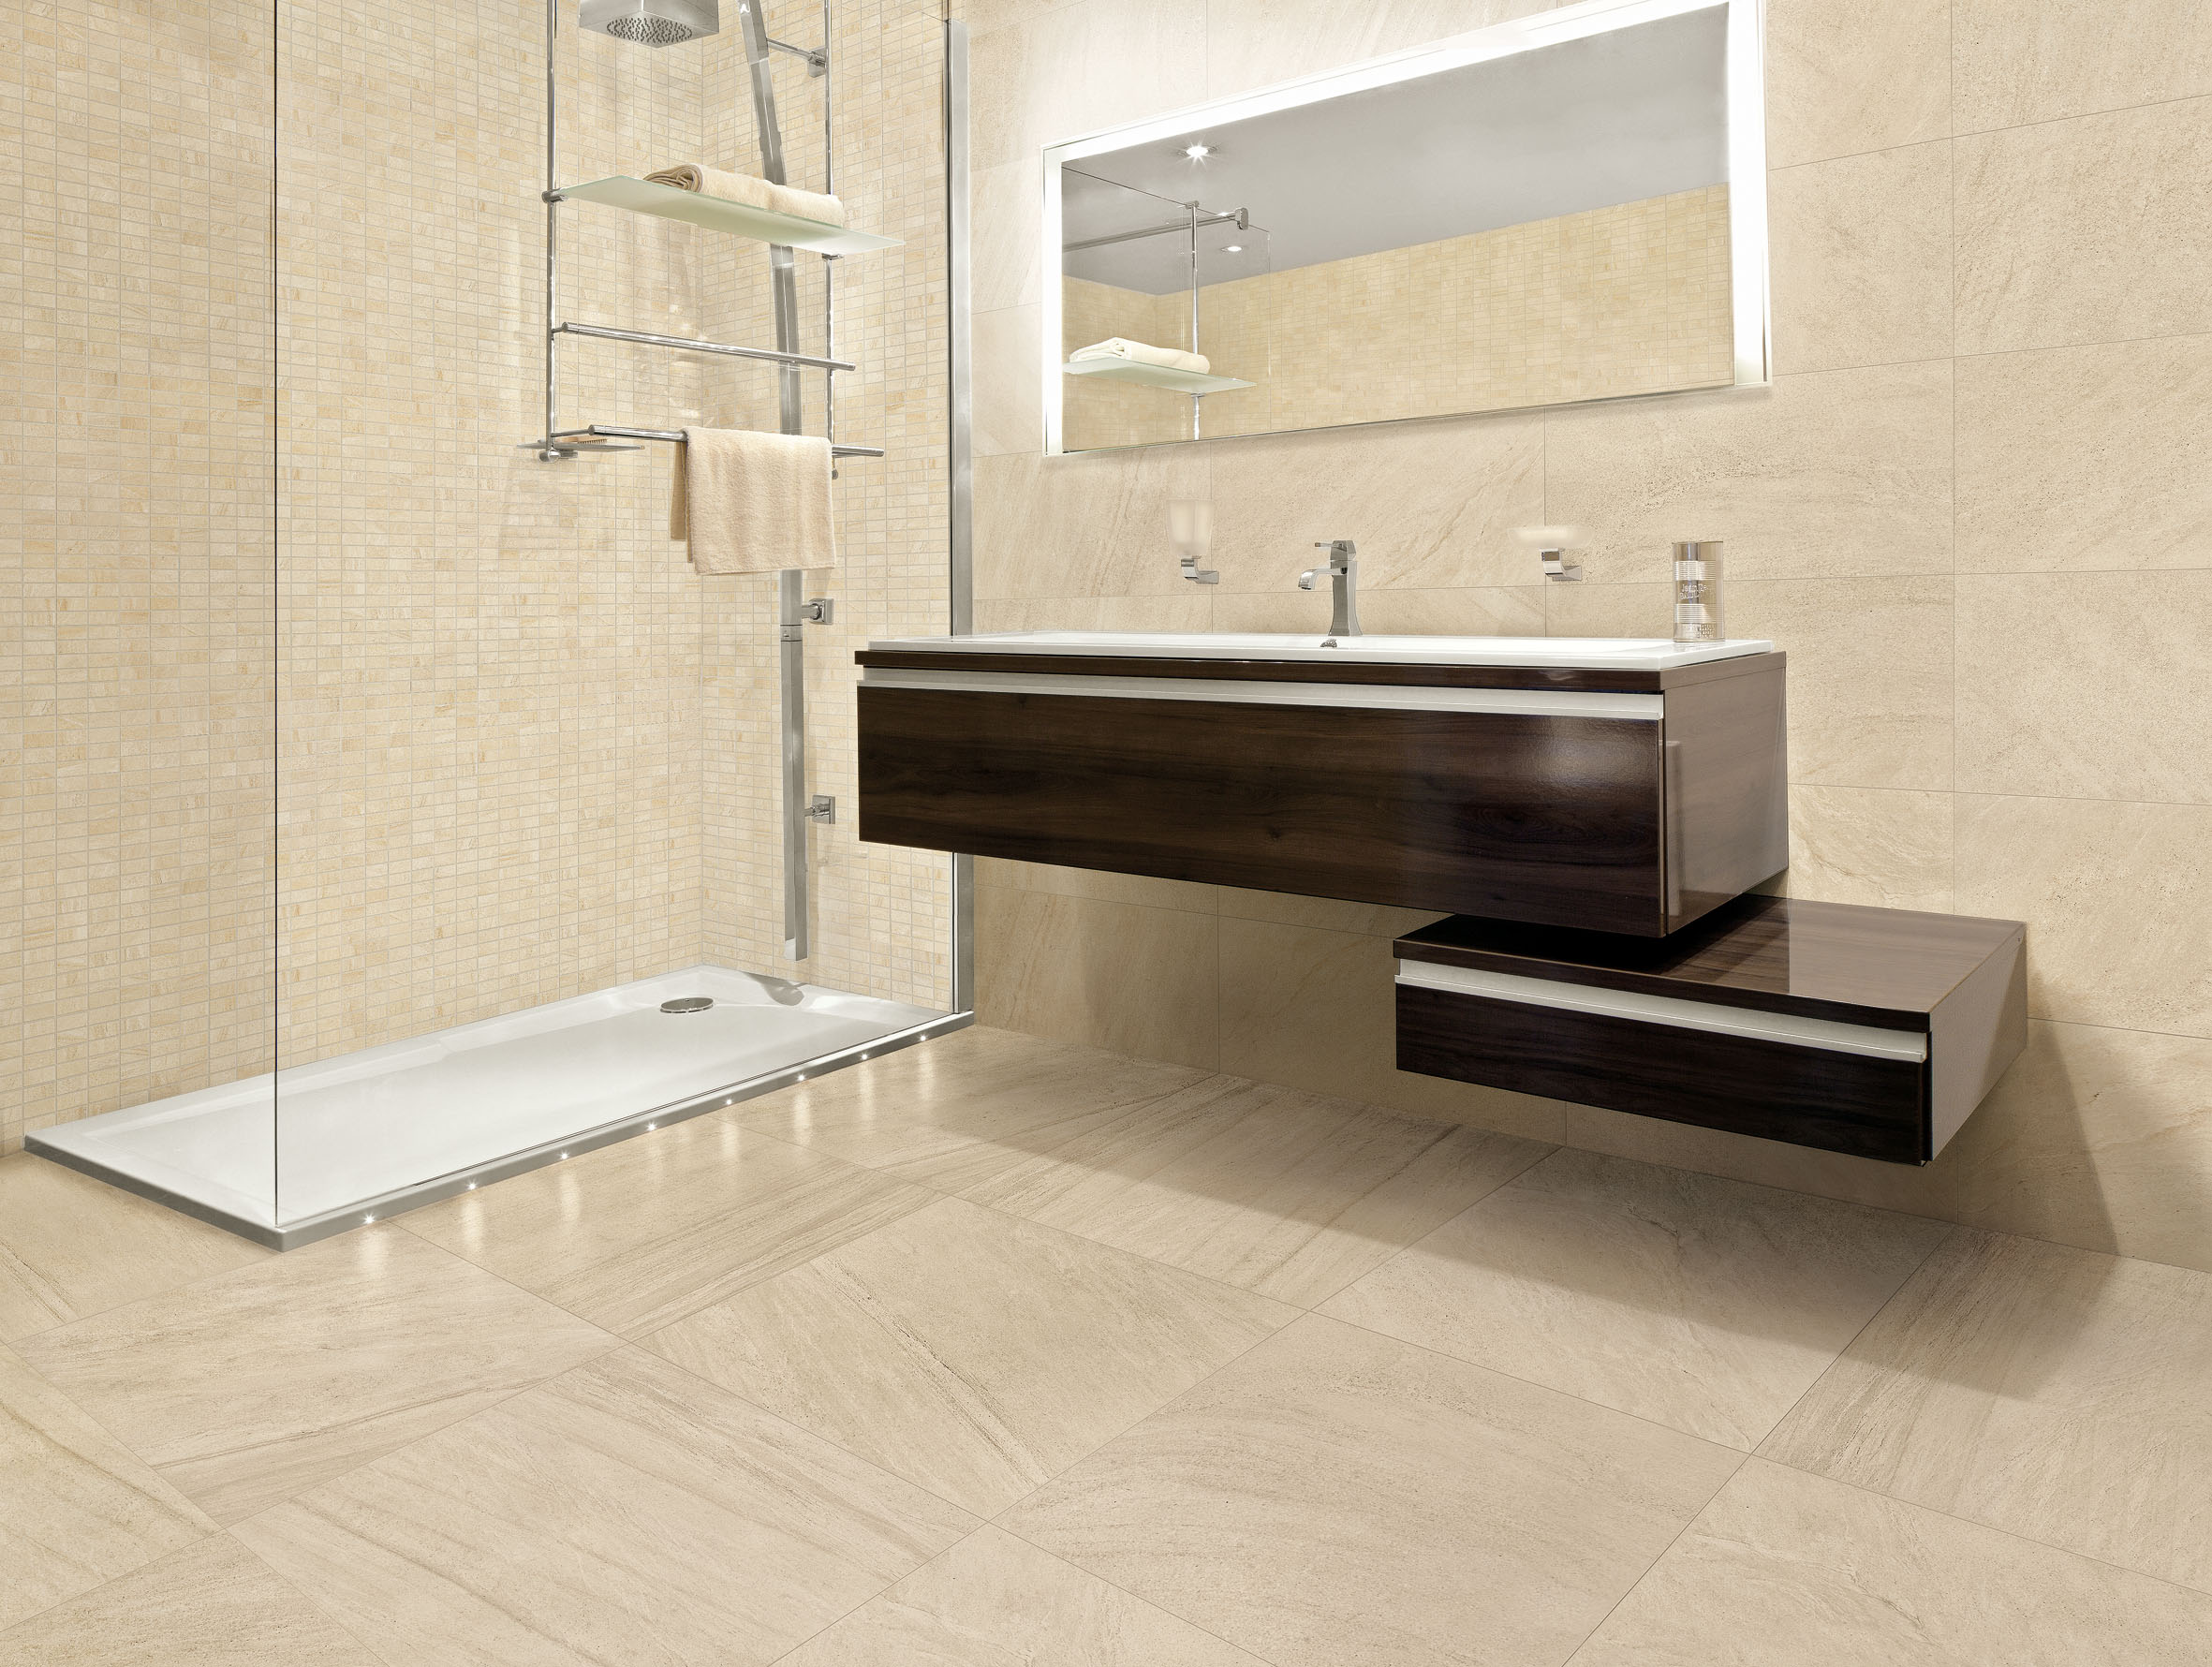 Purestone Series - Central States Tile